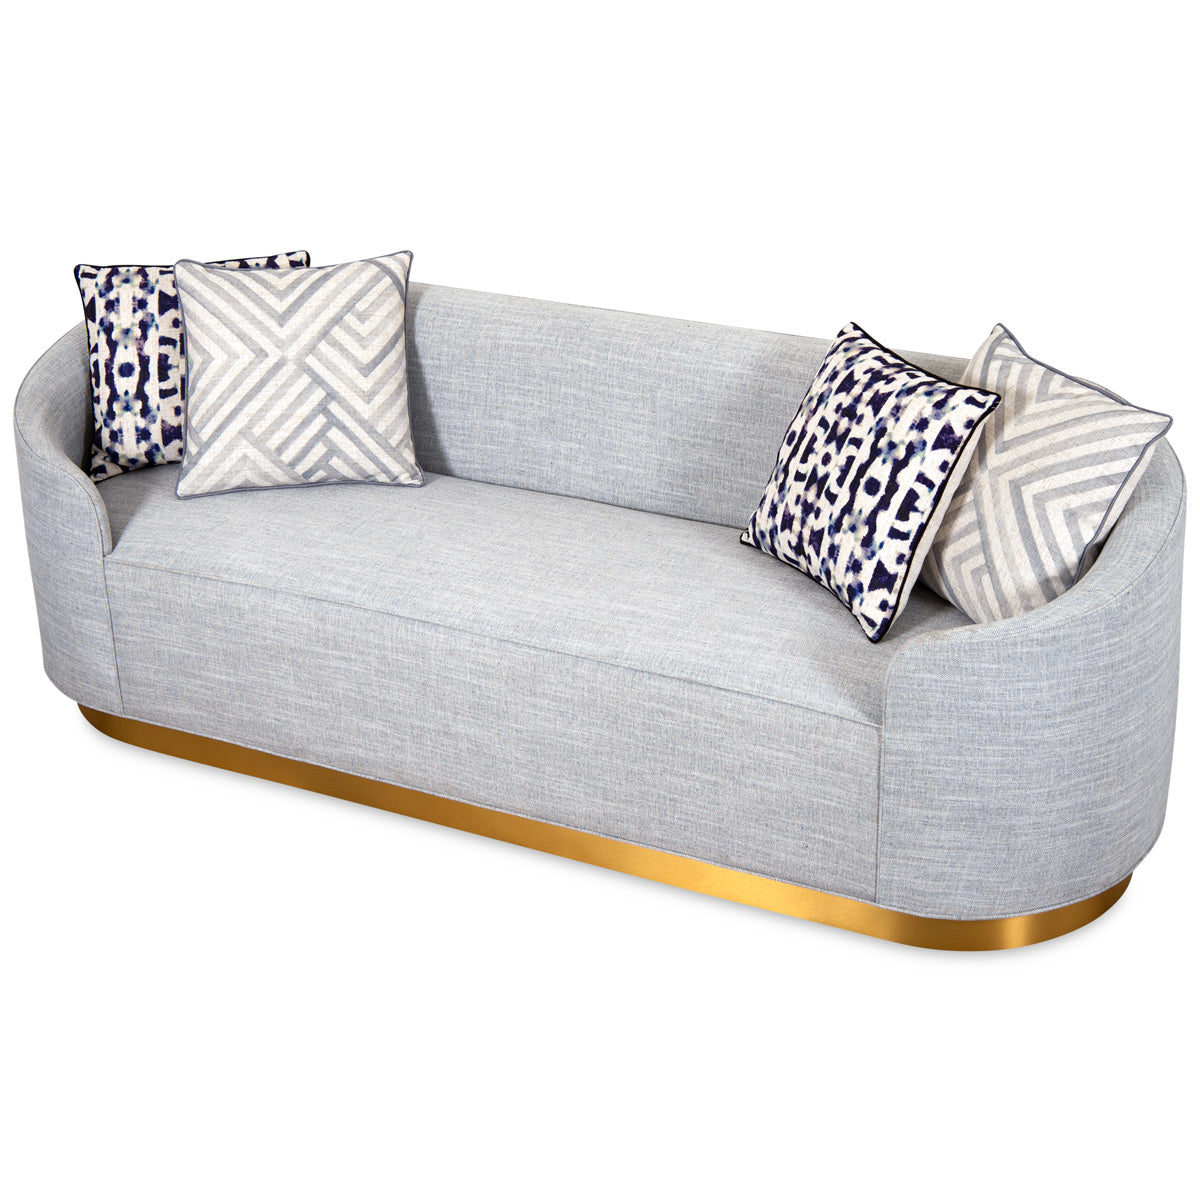 Eden Rock 2 Sofa in Linen - ModShop1.com